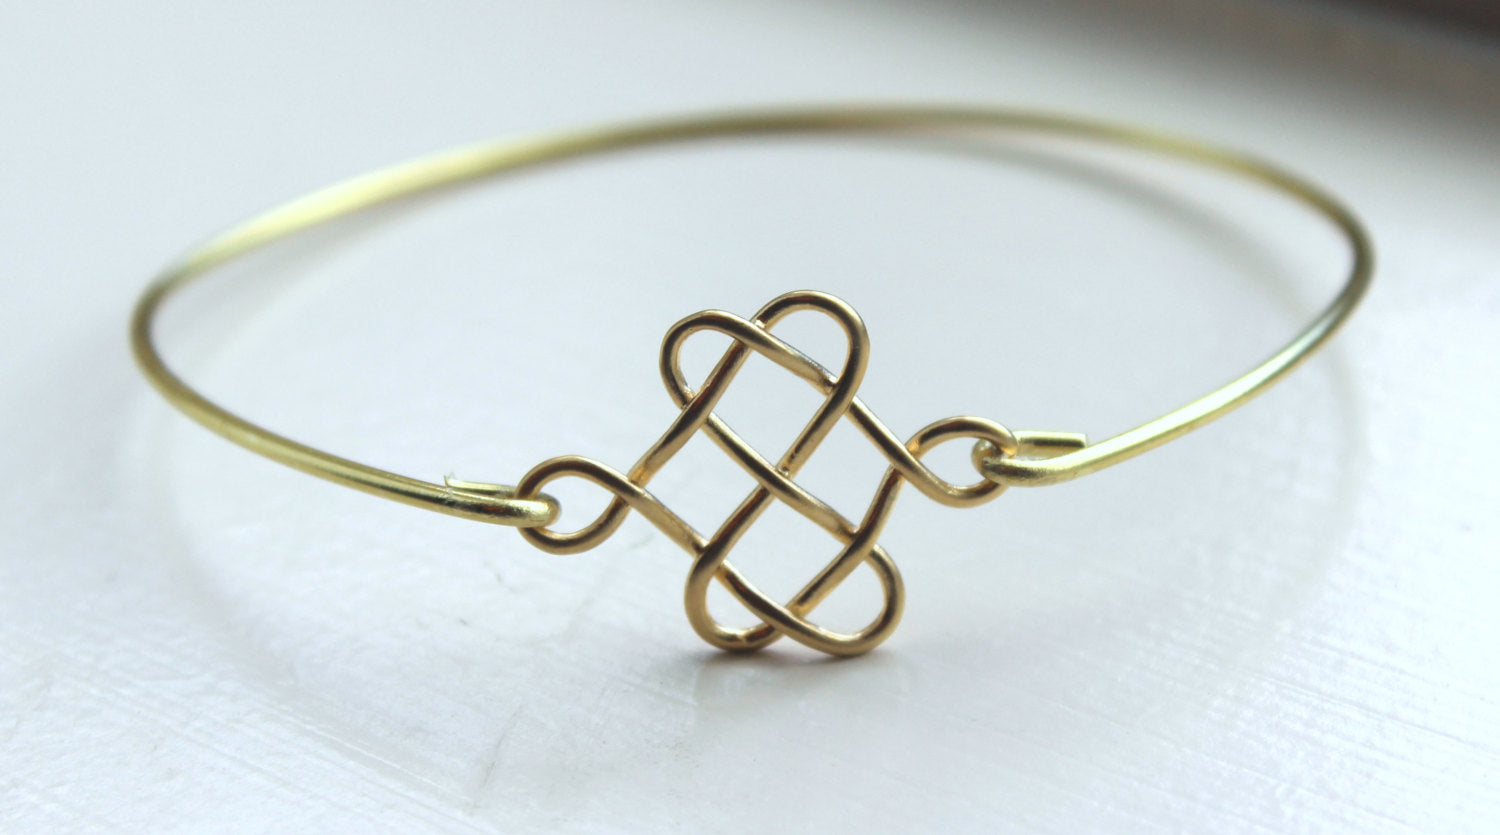 Gold Celtic Bangle Celtic Bracelet Gold Knot Charm - Stackable Bangle Charm Bracelet - Bridesmaid Gift - Gift under 15